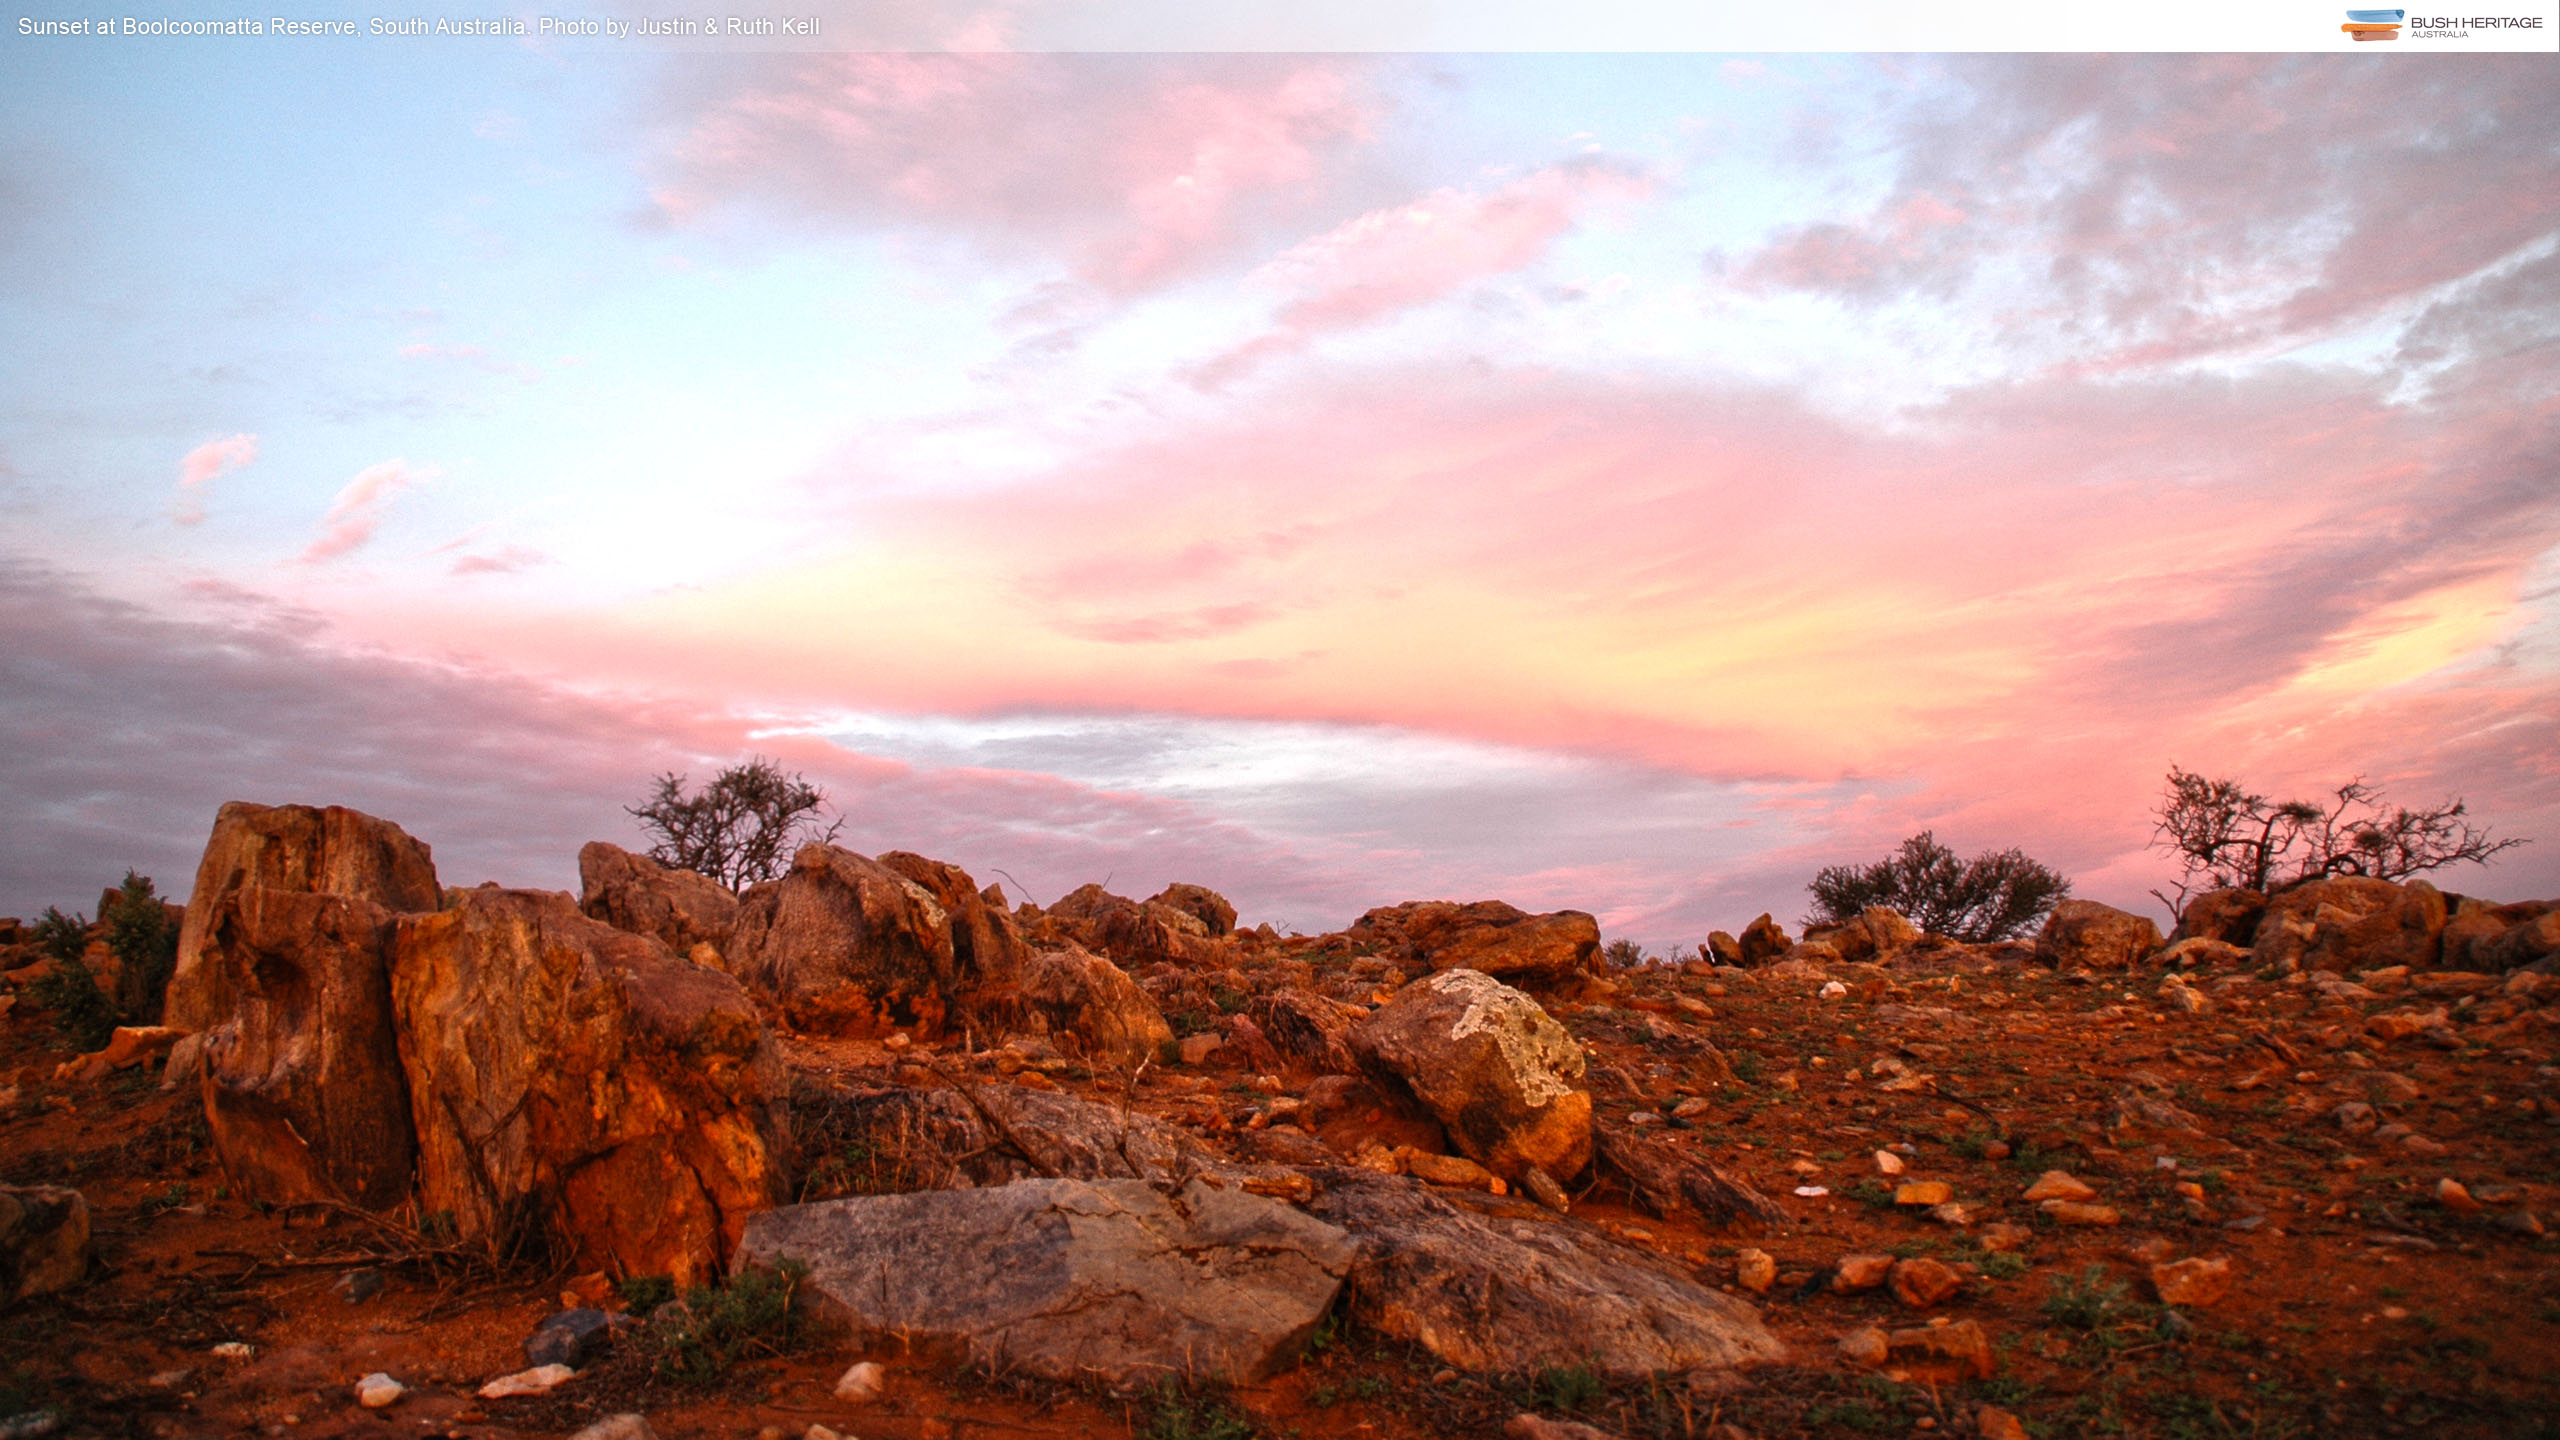 Sunset at Boolcoomatta Reserve, South Australia. Photo by Justin & Ruth Kell